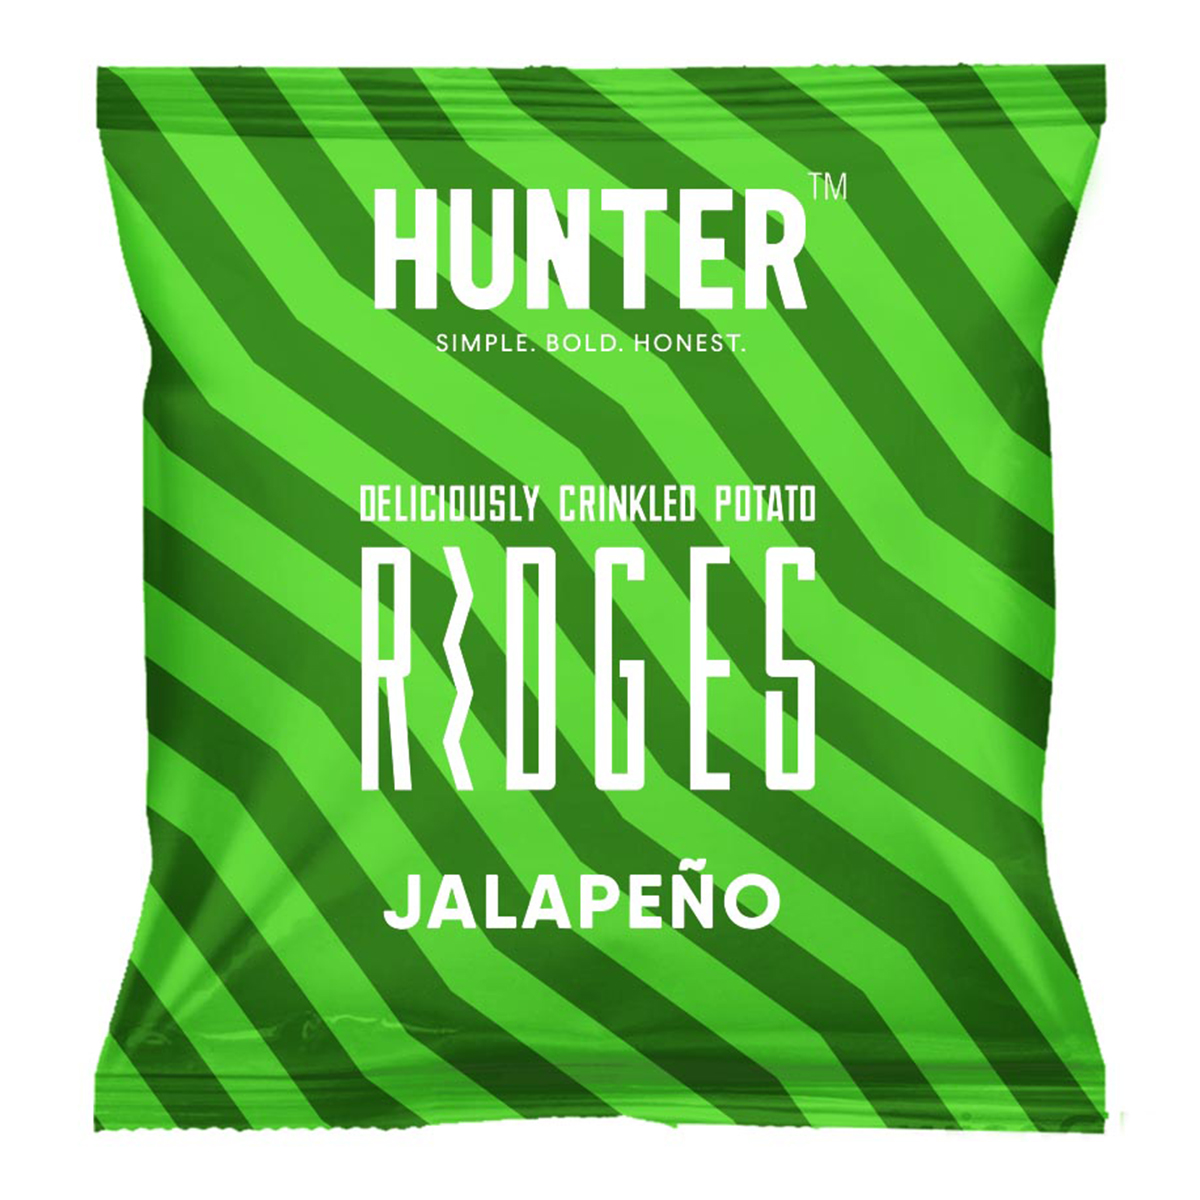 Deliciously Crinkled Potato Ridges - Jalapeno (40gm)